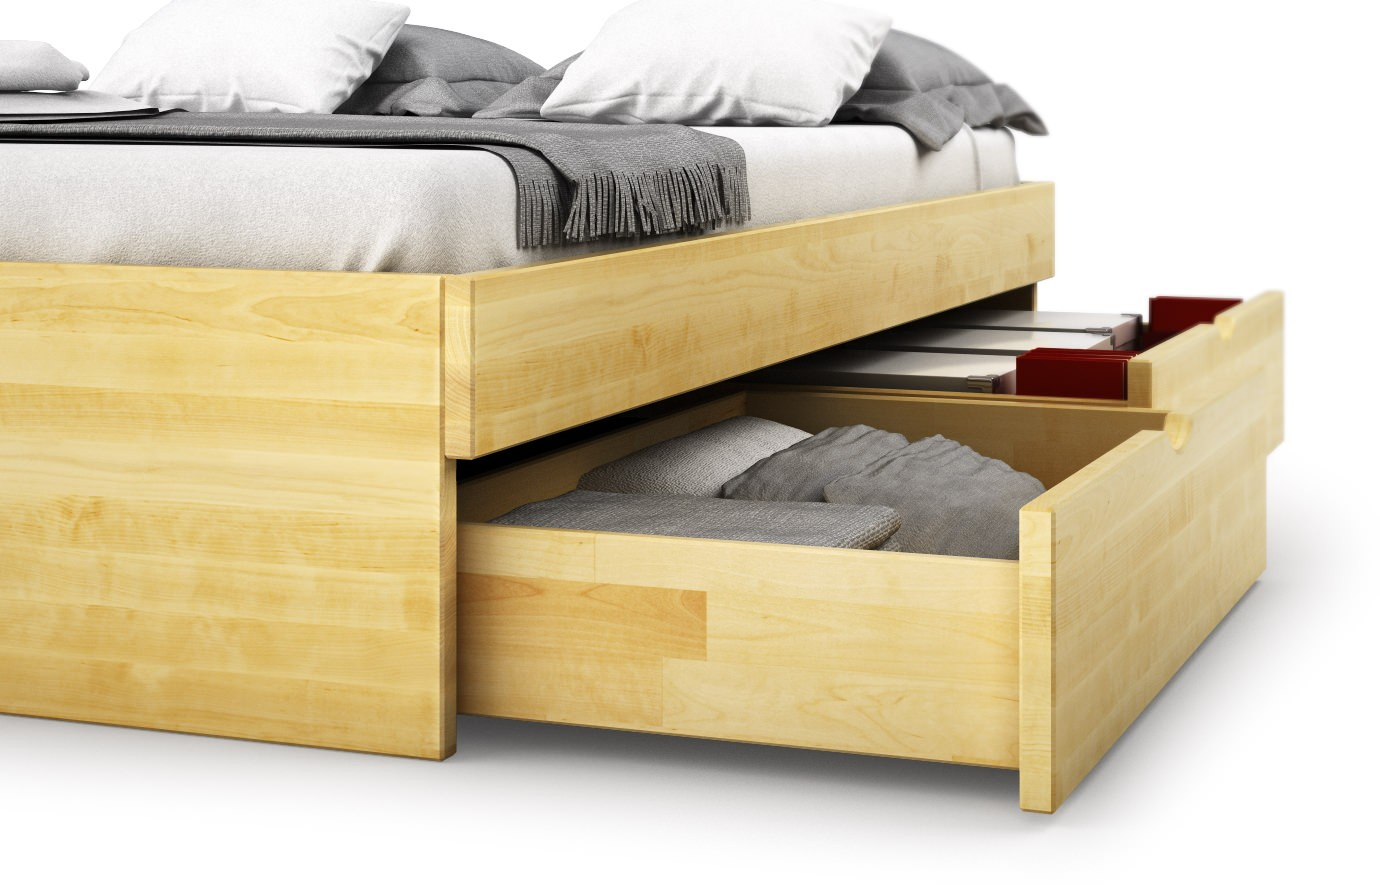 bett aus birke massivholzbett bett aragona birke 140x200 holzbett ehebett yadros ebay. Black Bedroom Furniture Sets. Home Design Ideas